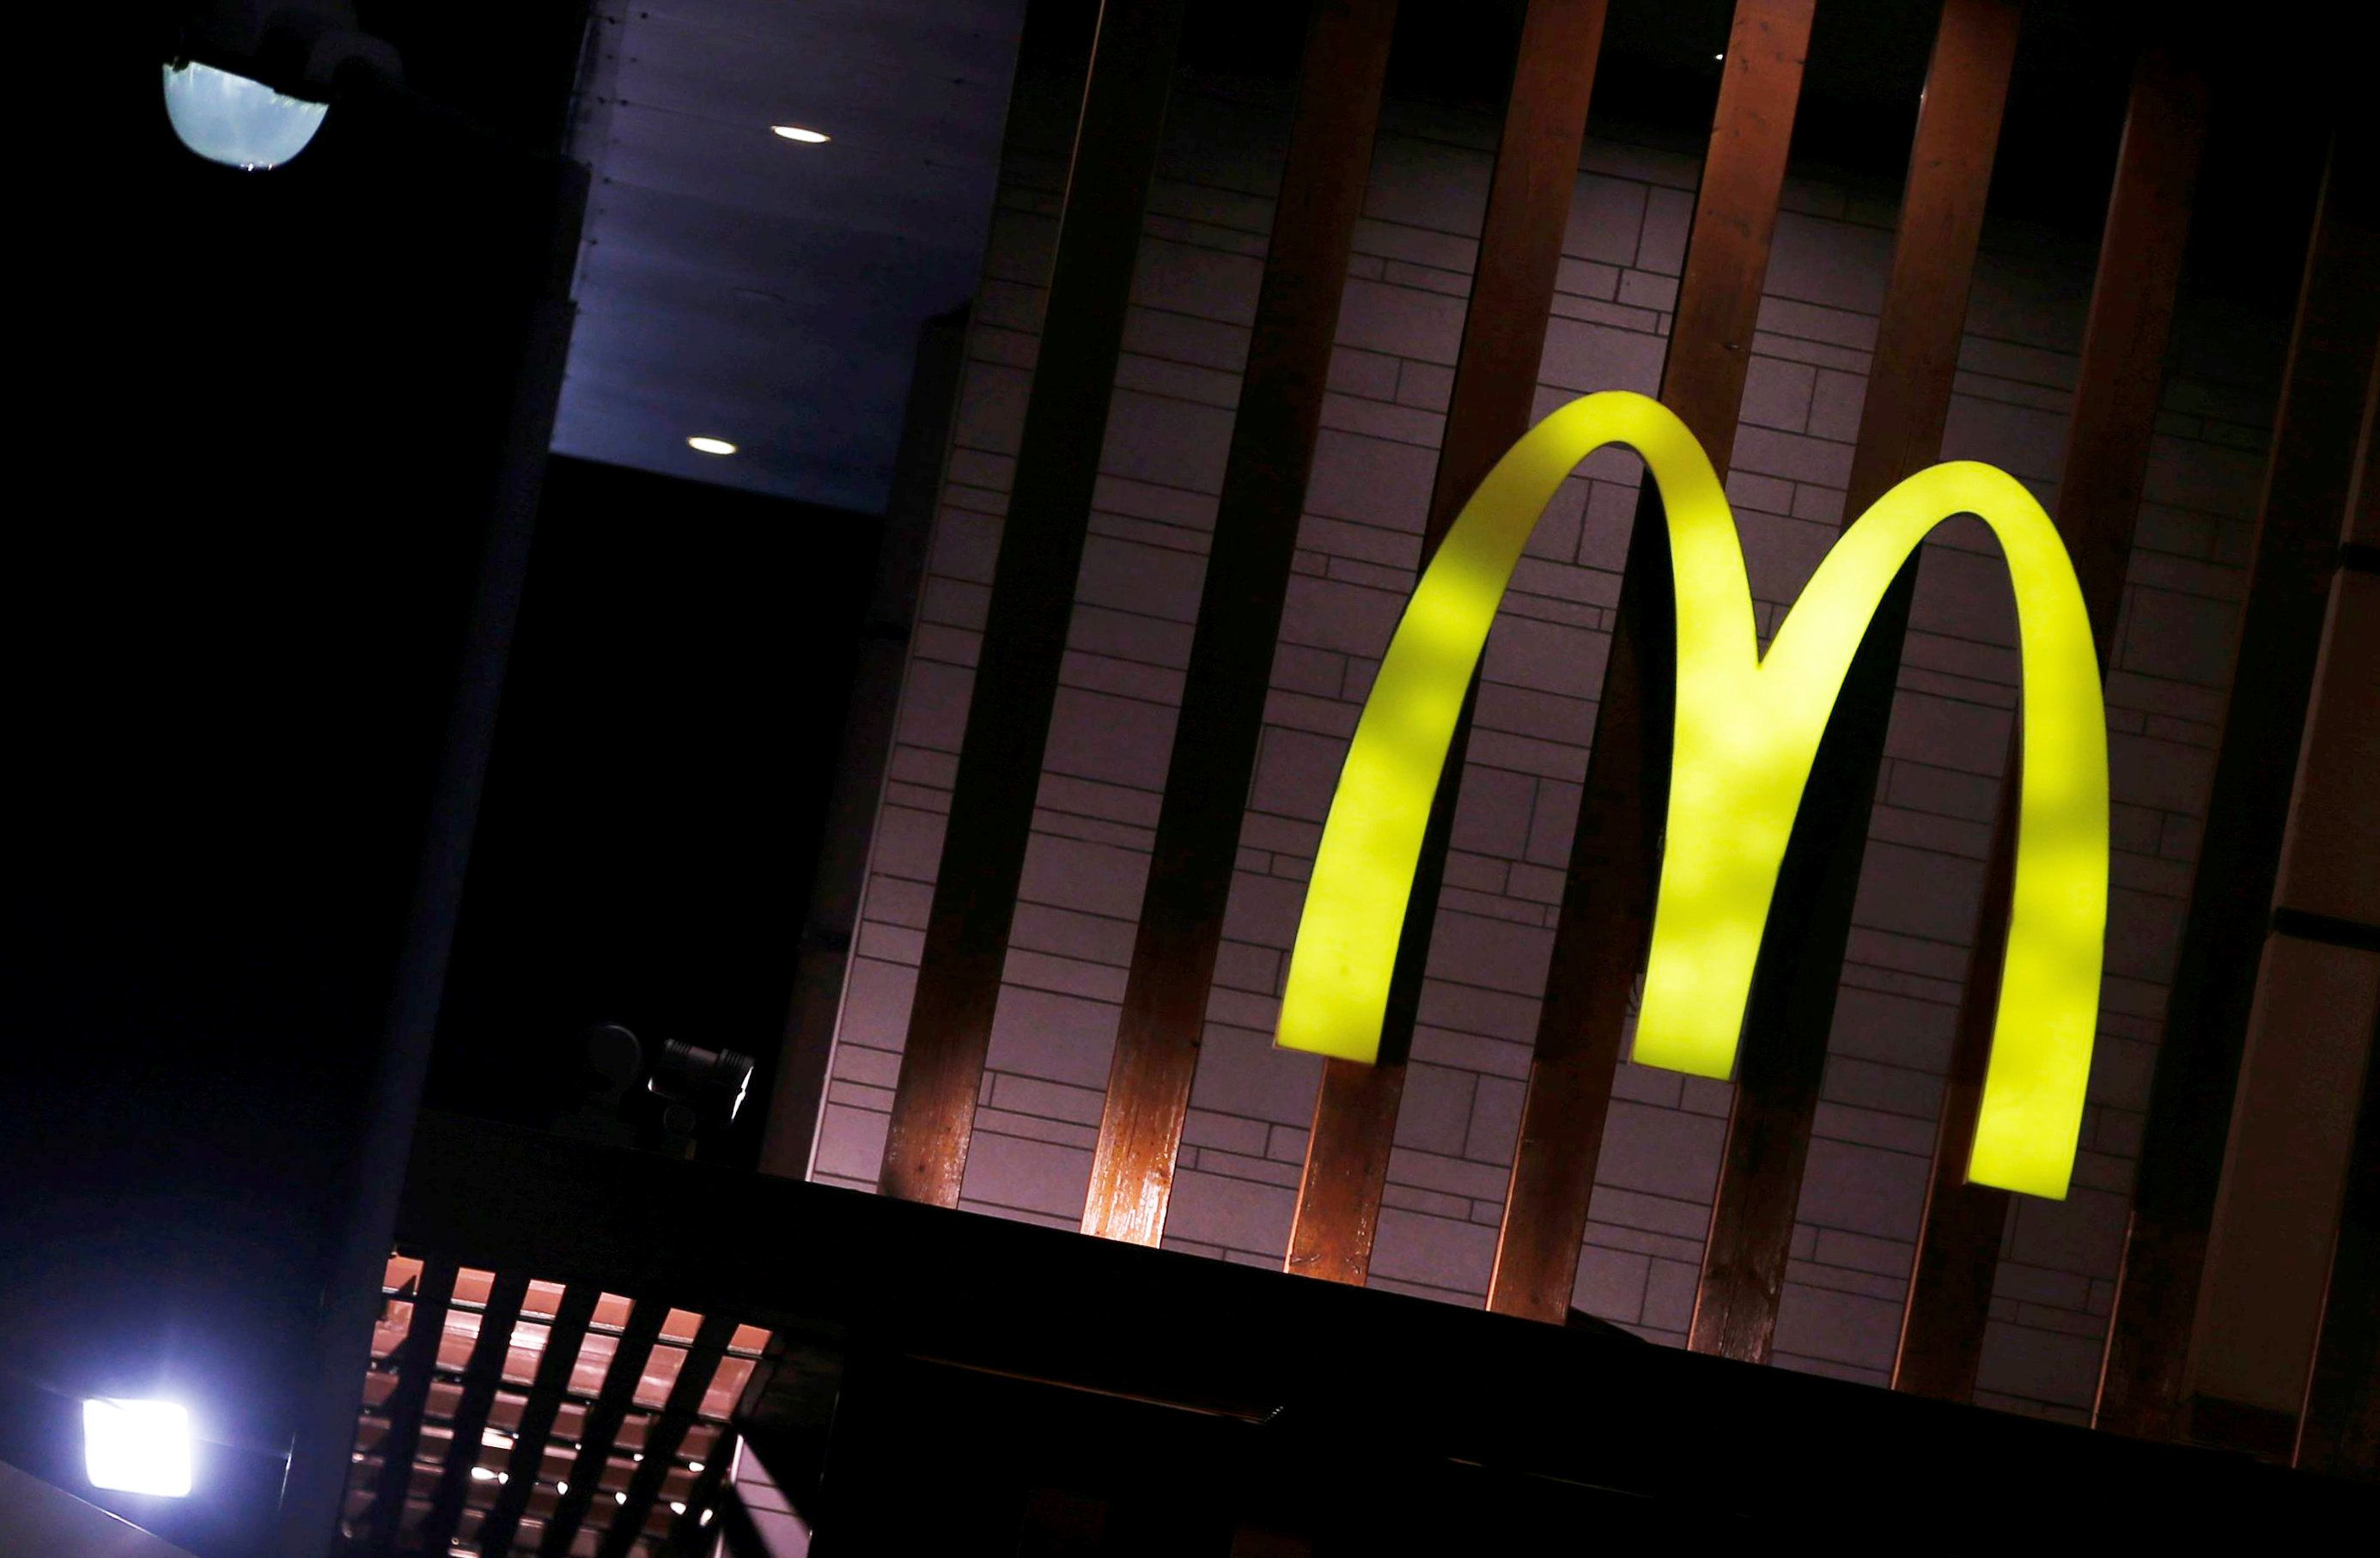 The logo of a McDonald's restaurant is seen in Bordeaux, France, June 18, 2018. Picture taken June 18, 2018. REUTERS/Regis Duvignau